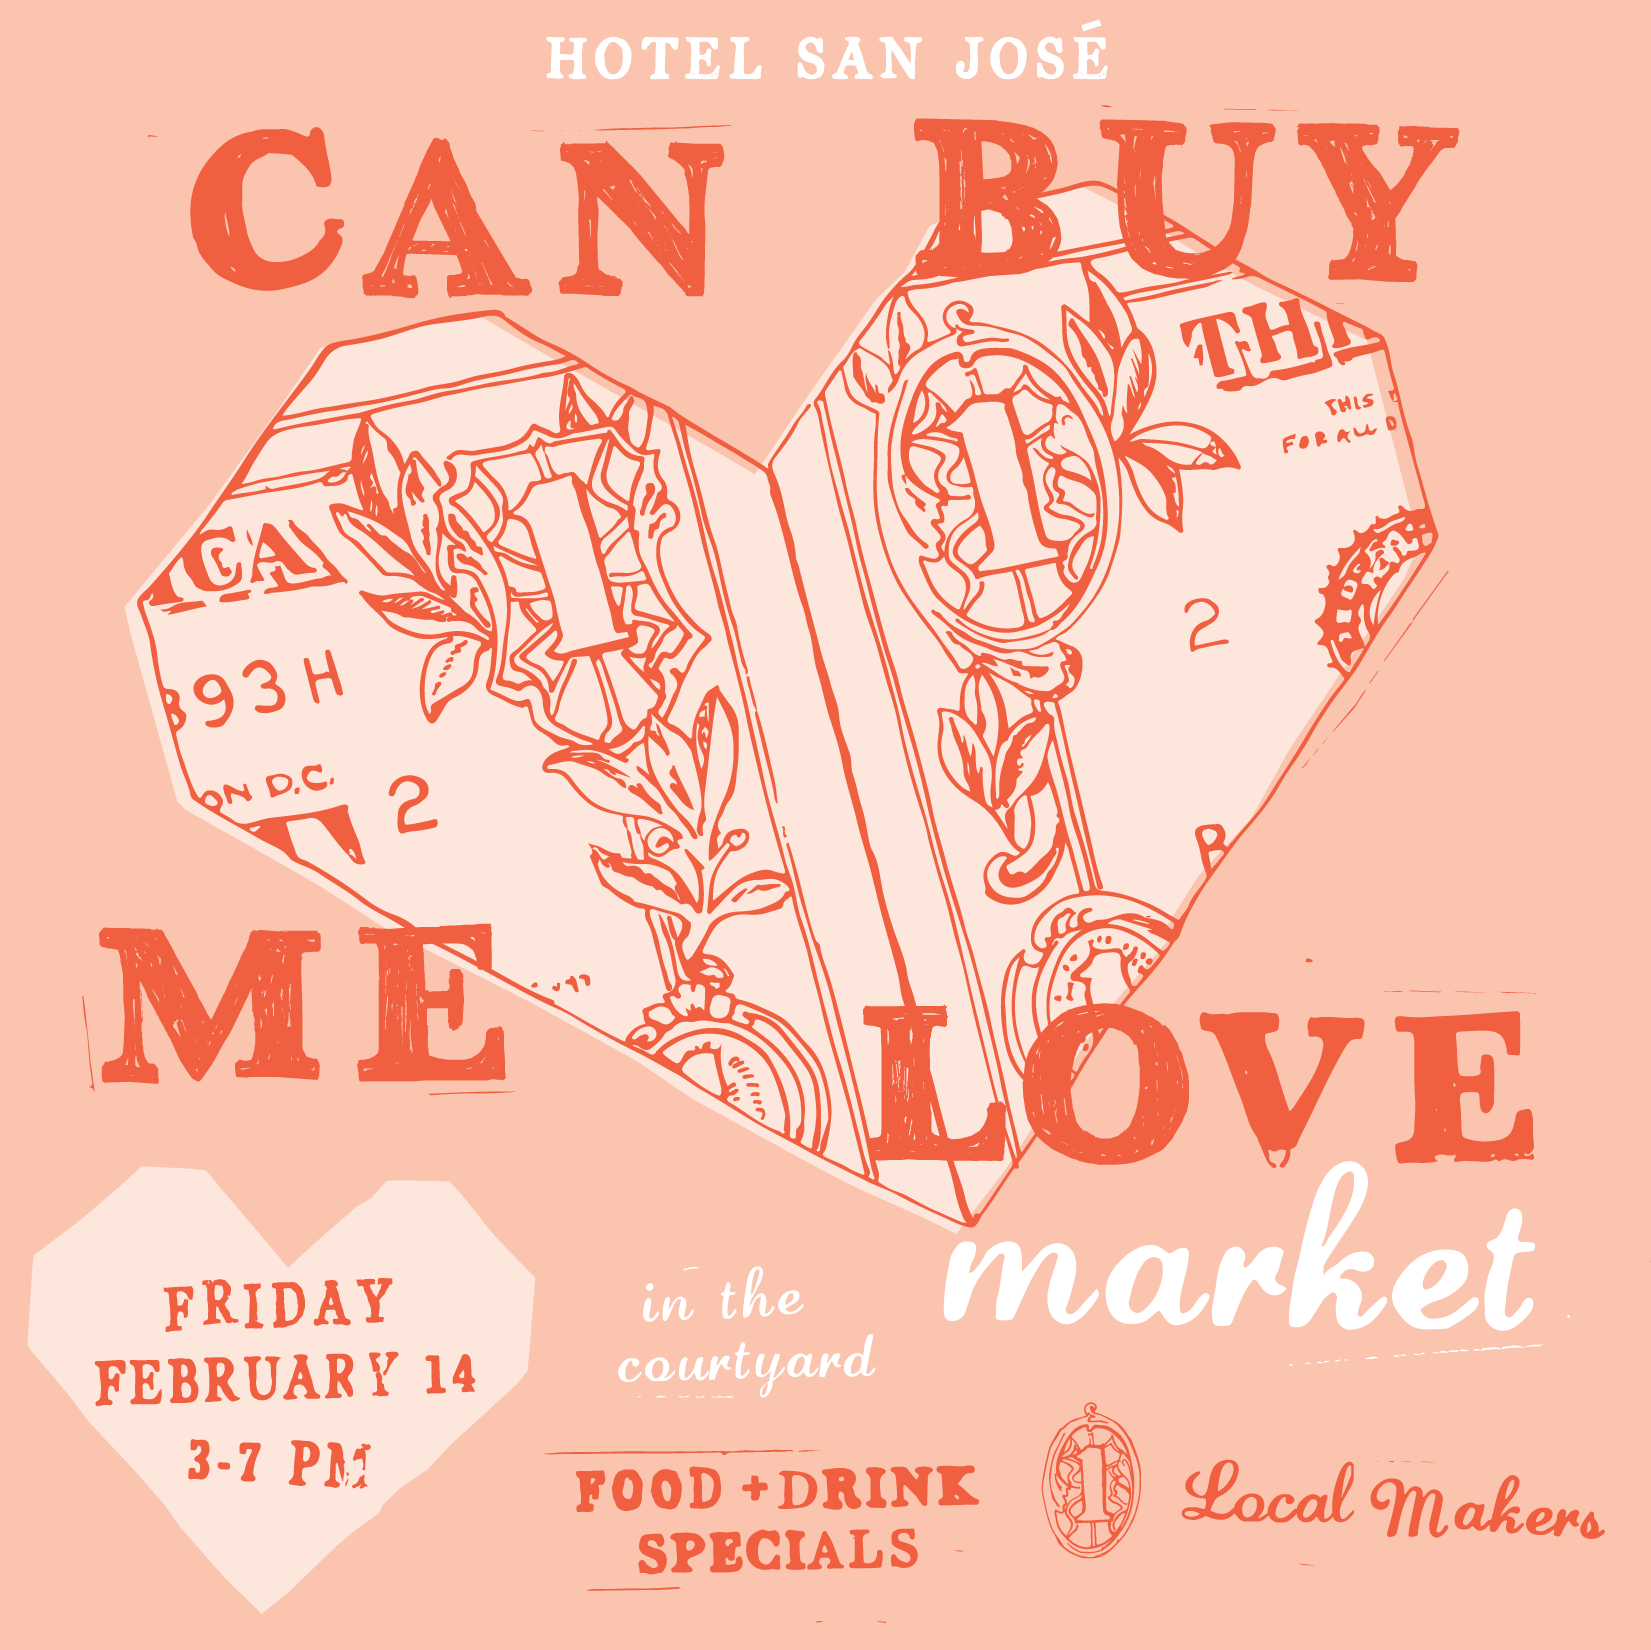 Click to read the full Can Buy Me Love Market post